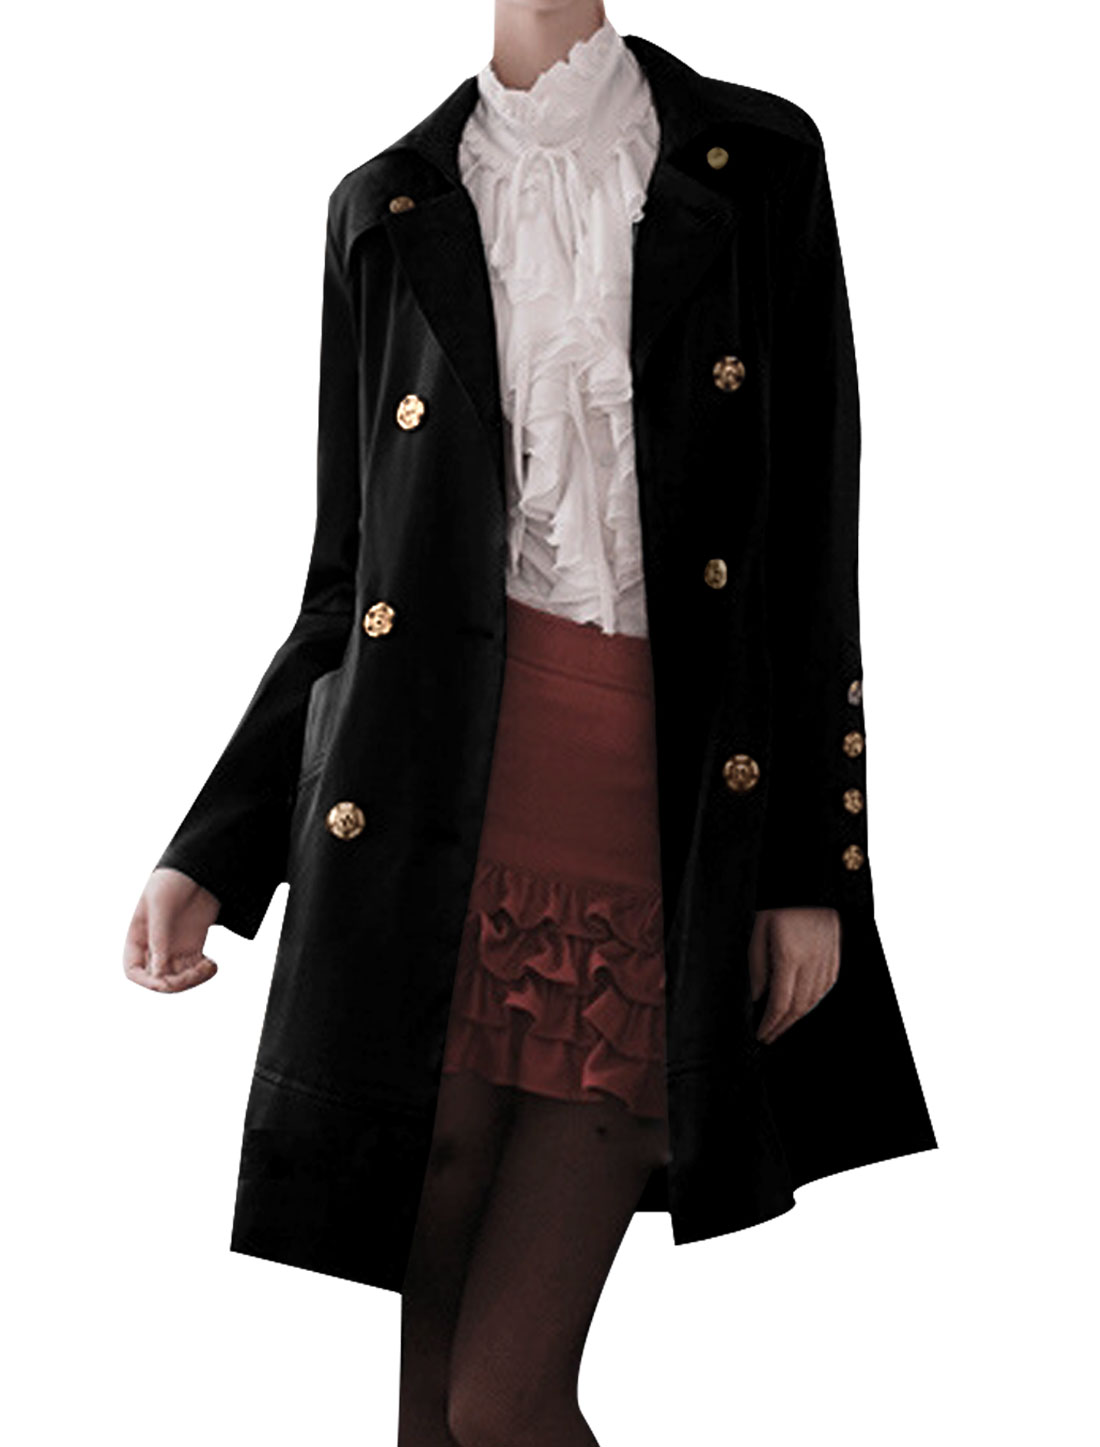 Unique Bargains Women Long Sleeve Turn Down Collar Single Breasted Trench Coat Black XS at Sears.com